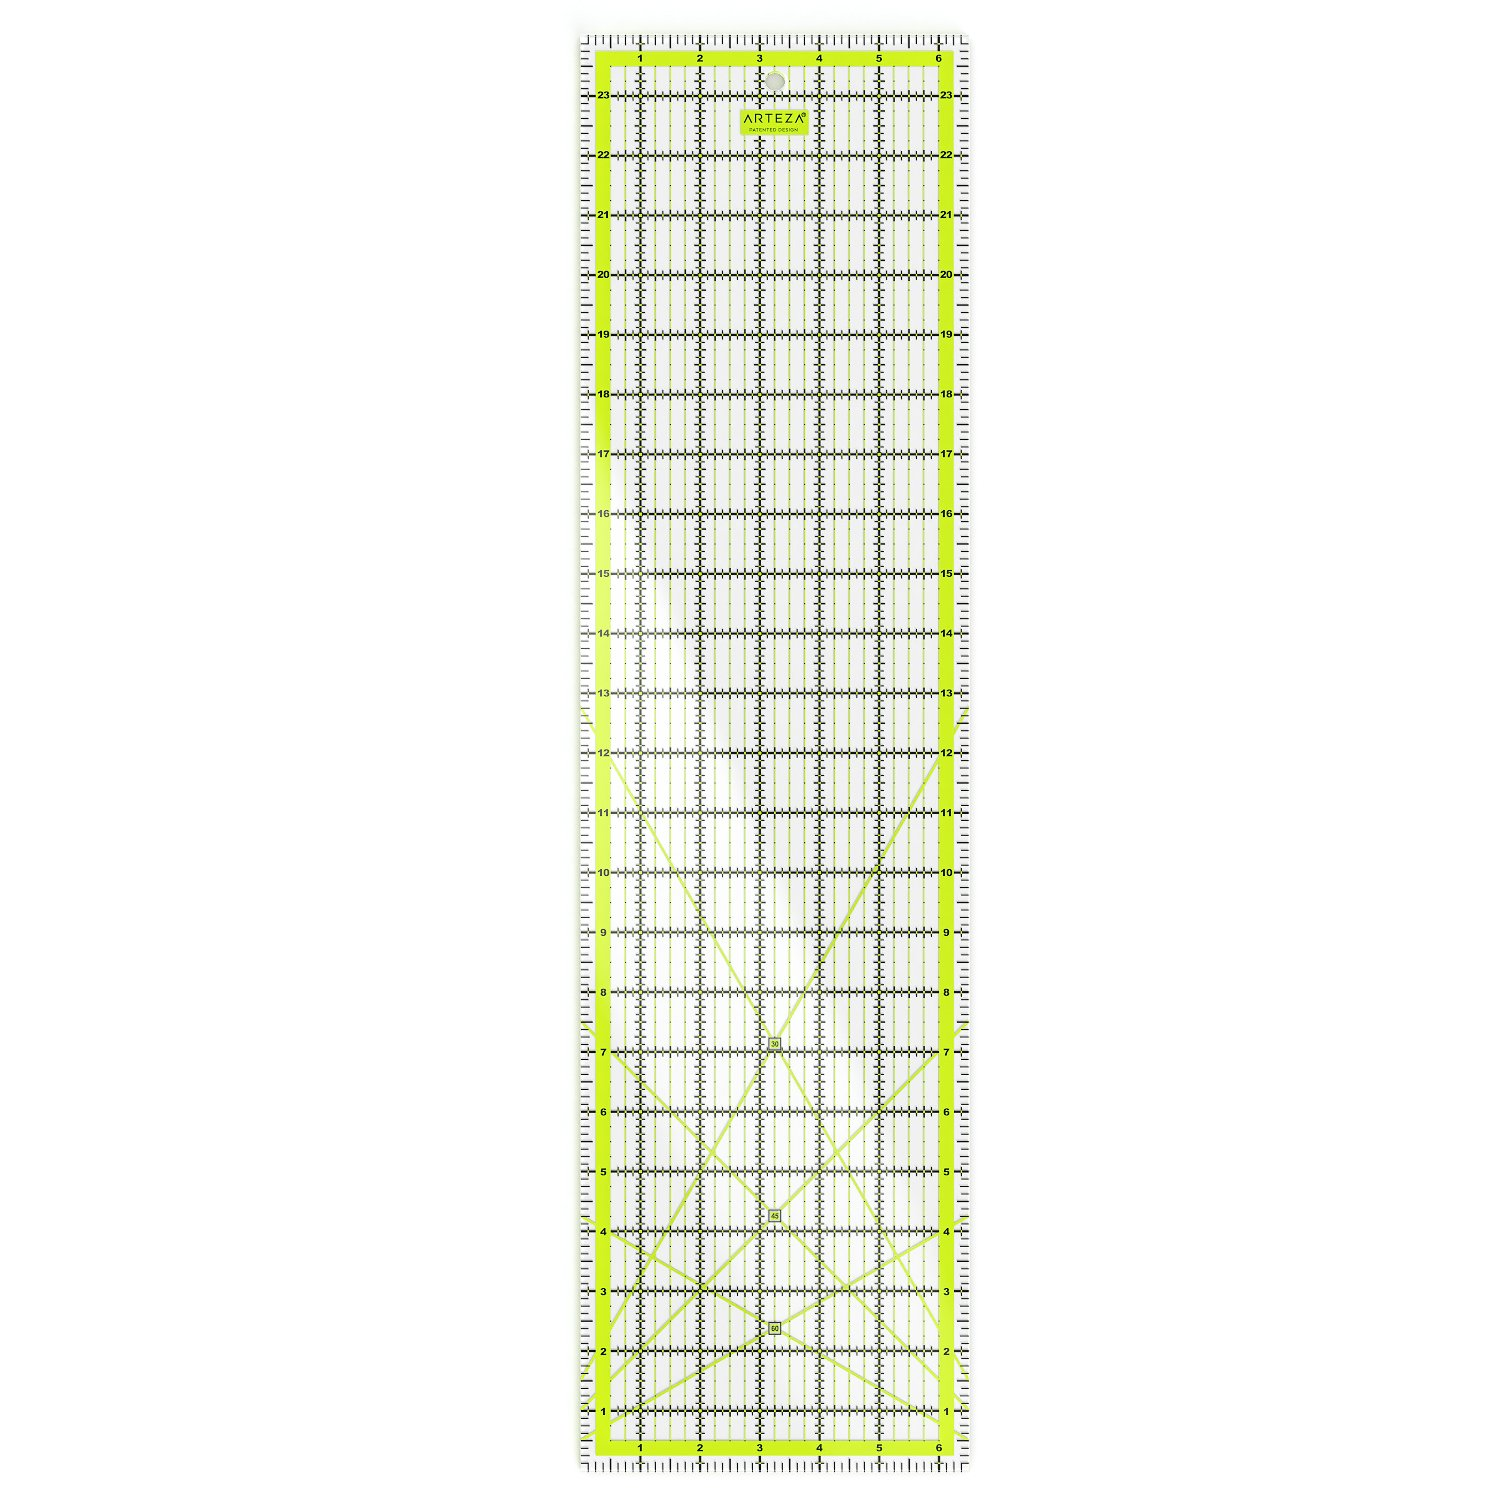 ARTEZA Quilting Ruler, Laser Cut Acrylic Quilters' Ruler with Patented Double Colored Grid Lines for Easy Precision Cutting, 6.5'' Wide x 24'' Long for Quilting, Sewing & Crafts, Black & Lime Green by ARTEZA